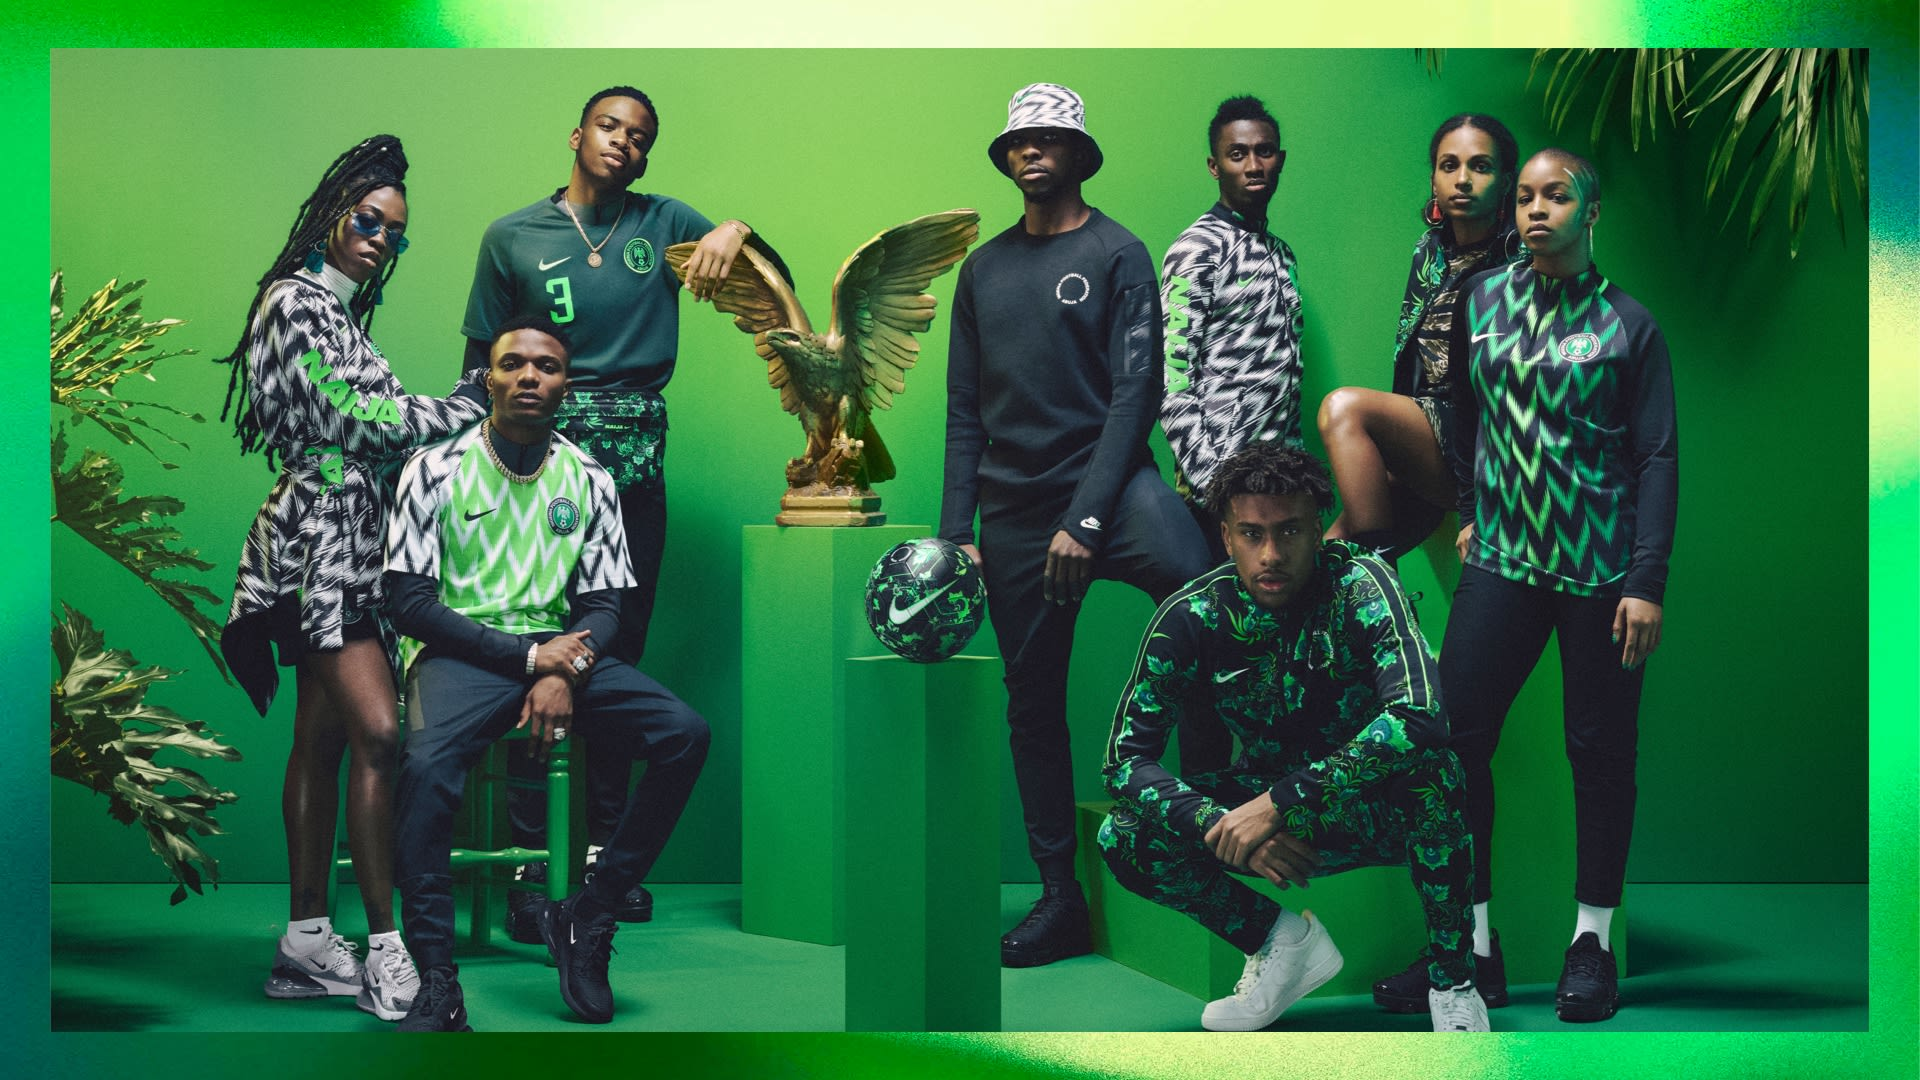 ca72c067b NAIJA Nigeria World Cup Nike Kits Jerseys Collection Matthew Wolff Design  2018 Super Eagles